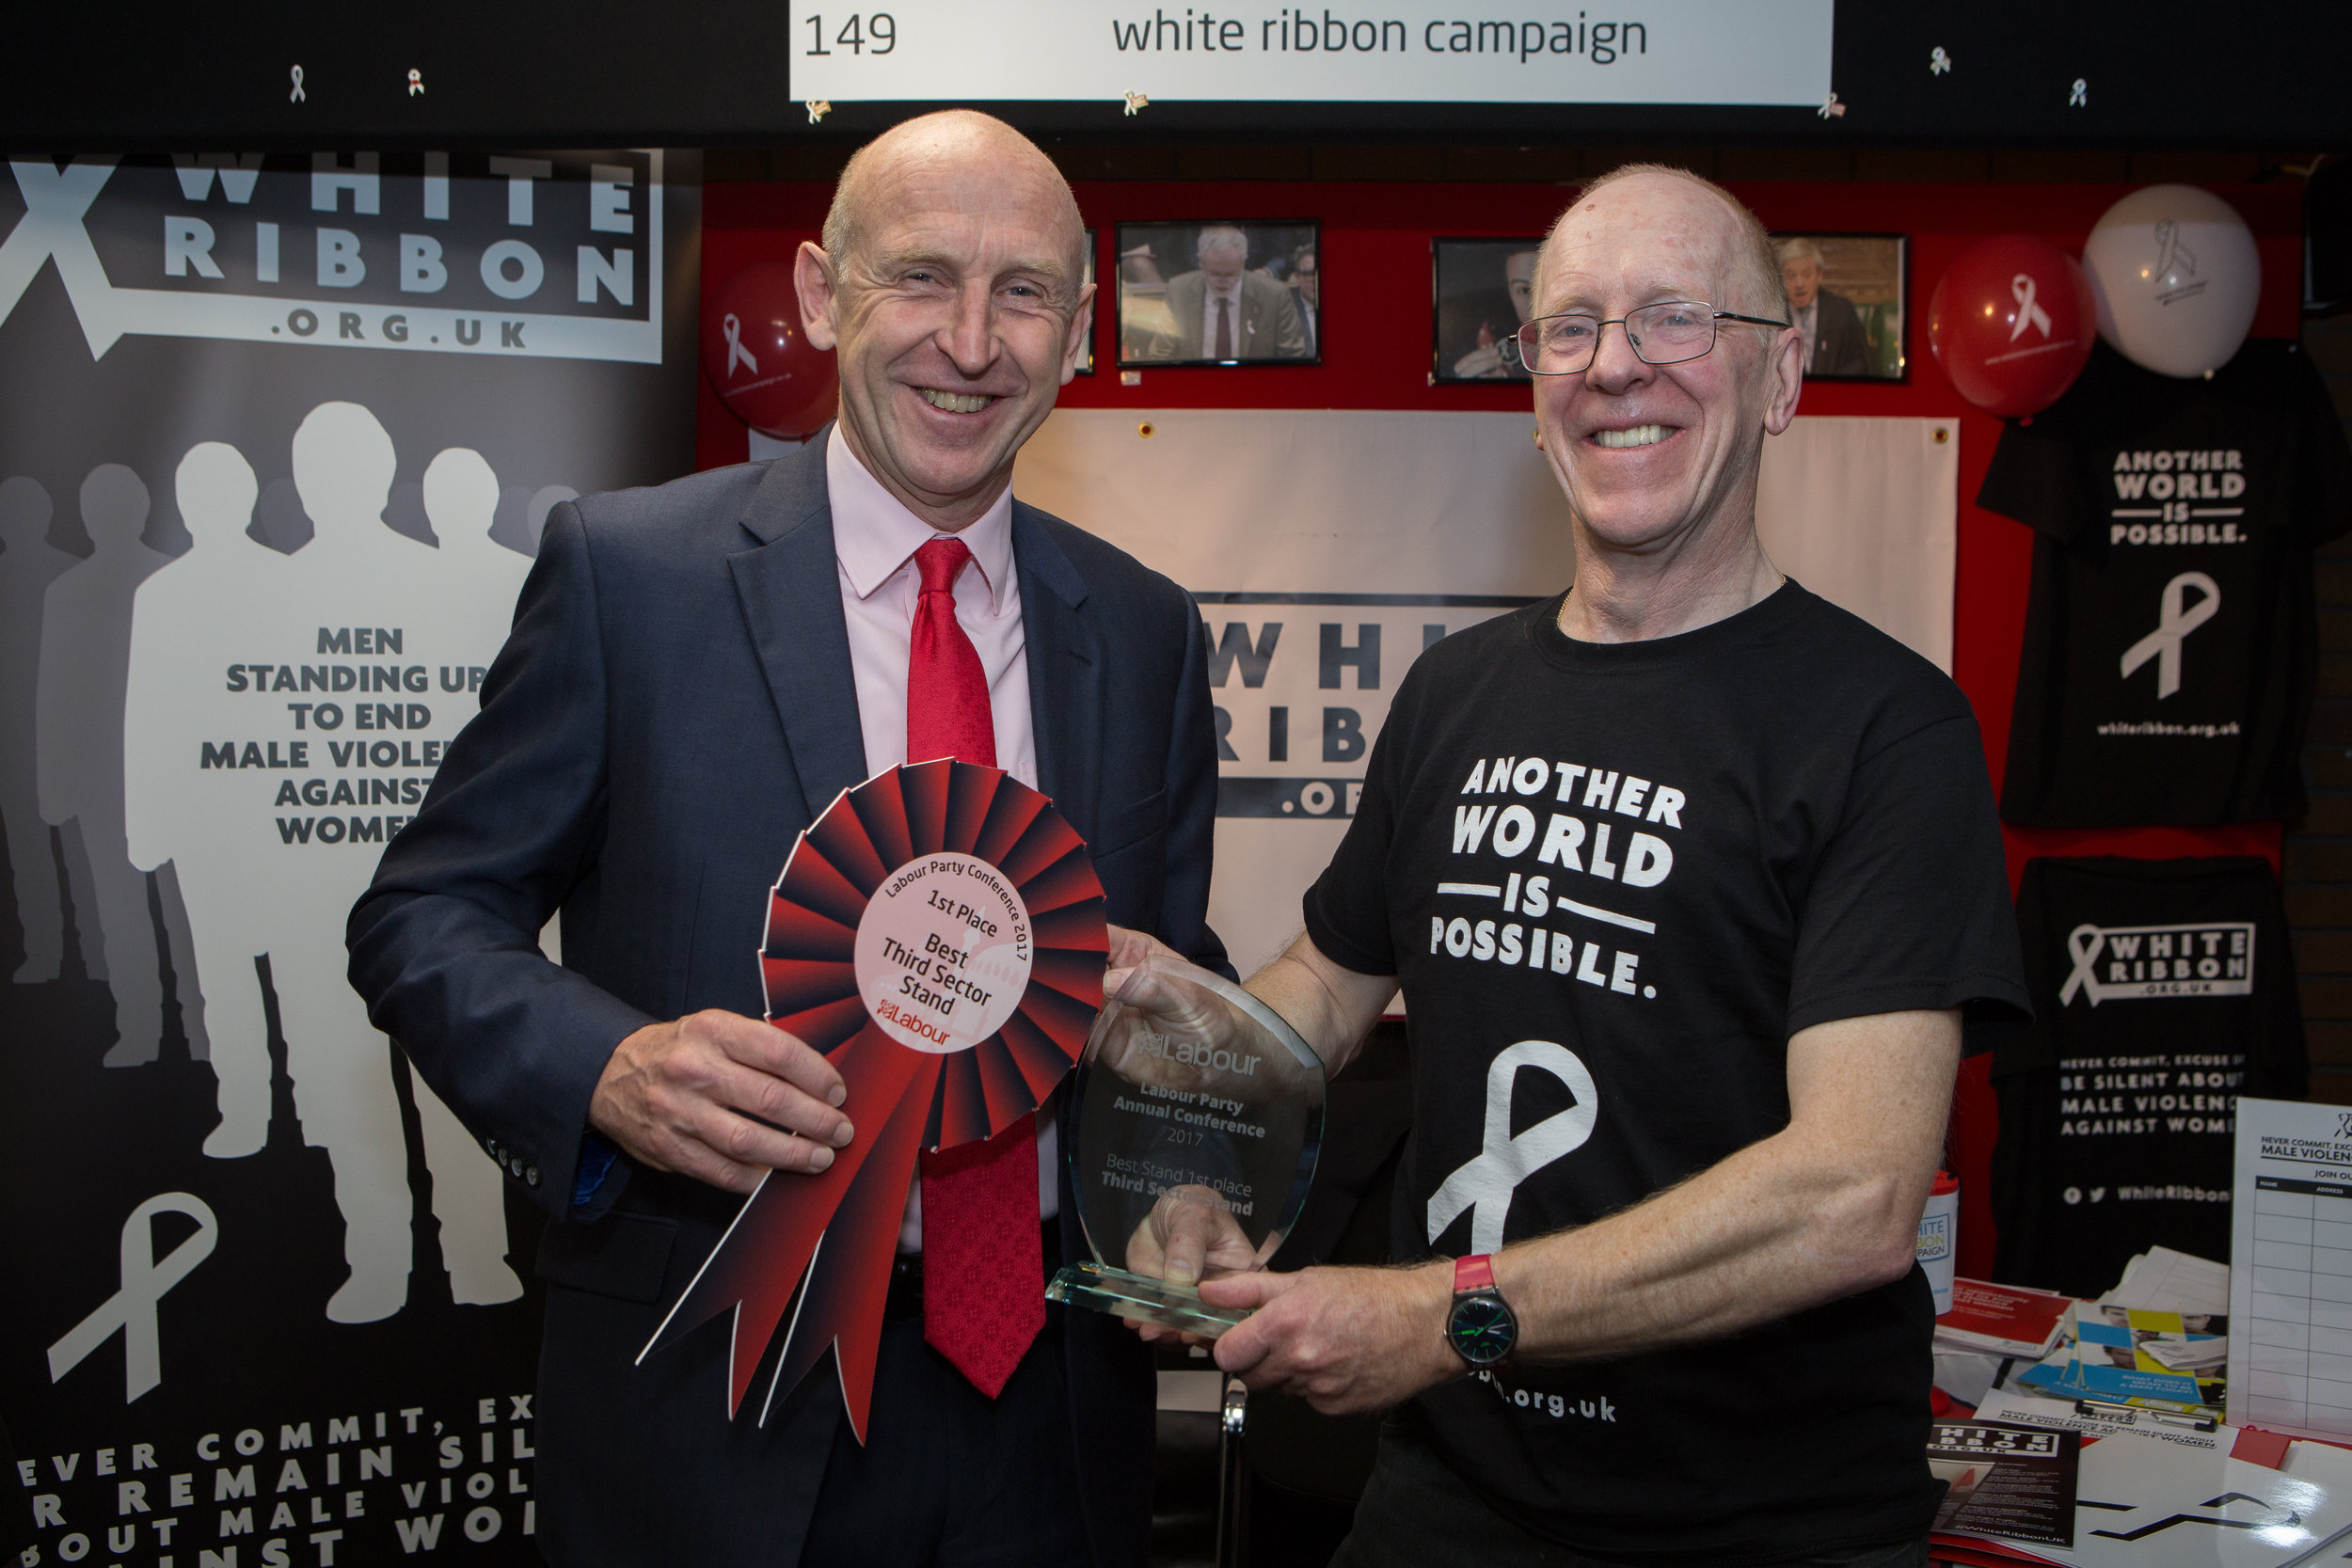 John Healey MP, Shadow Housing Minister, presents our founder Chris Green OBE with the award for Best Third Sector Stand, as voted for by conference attendees.